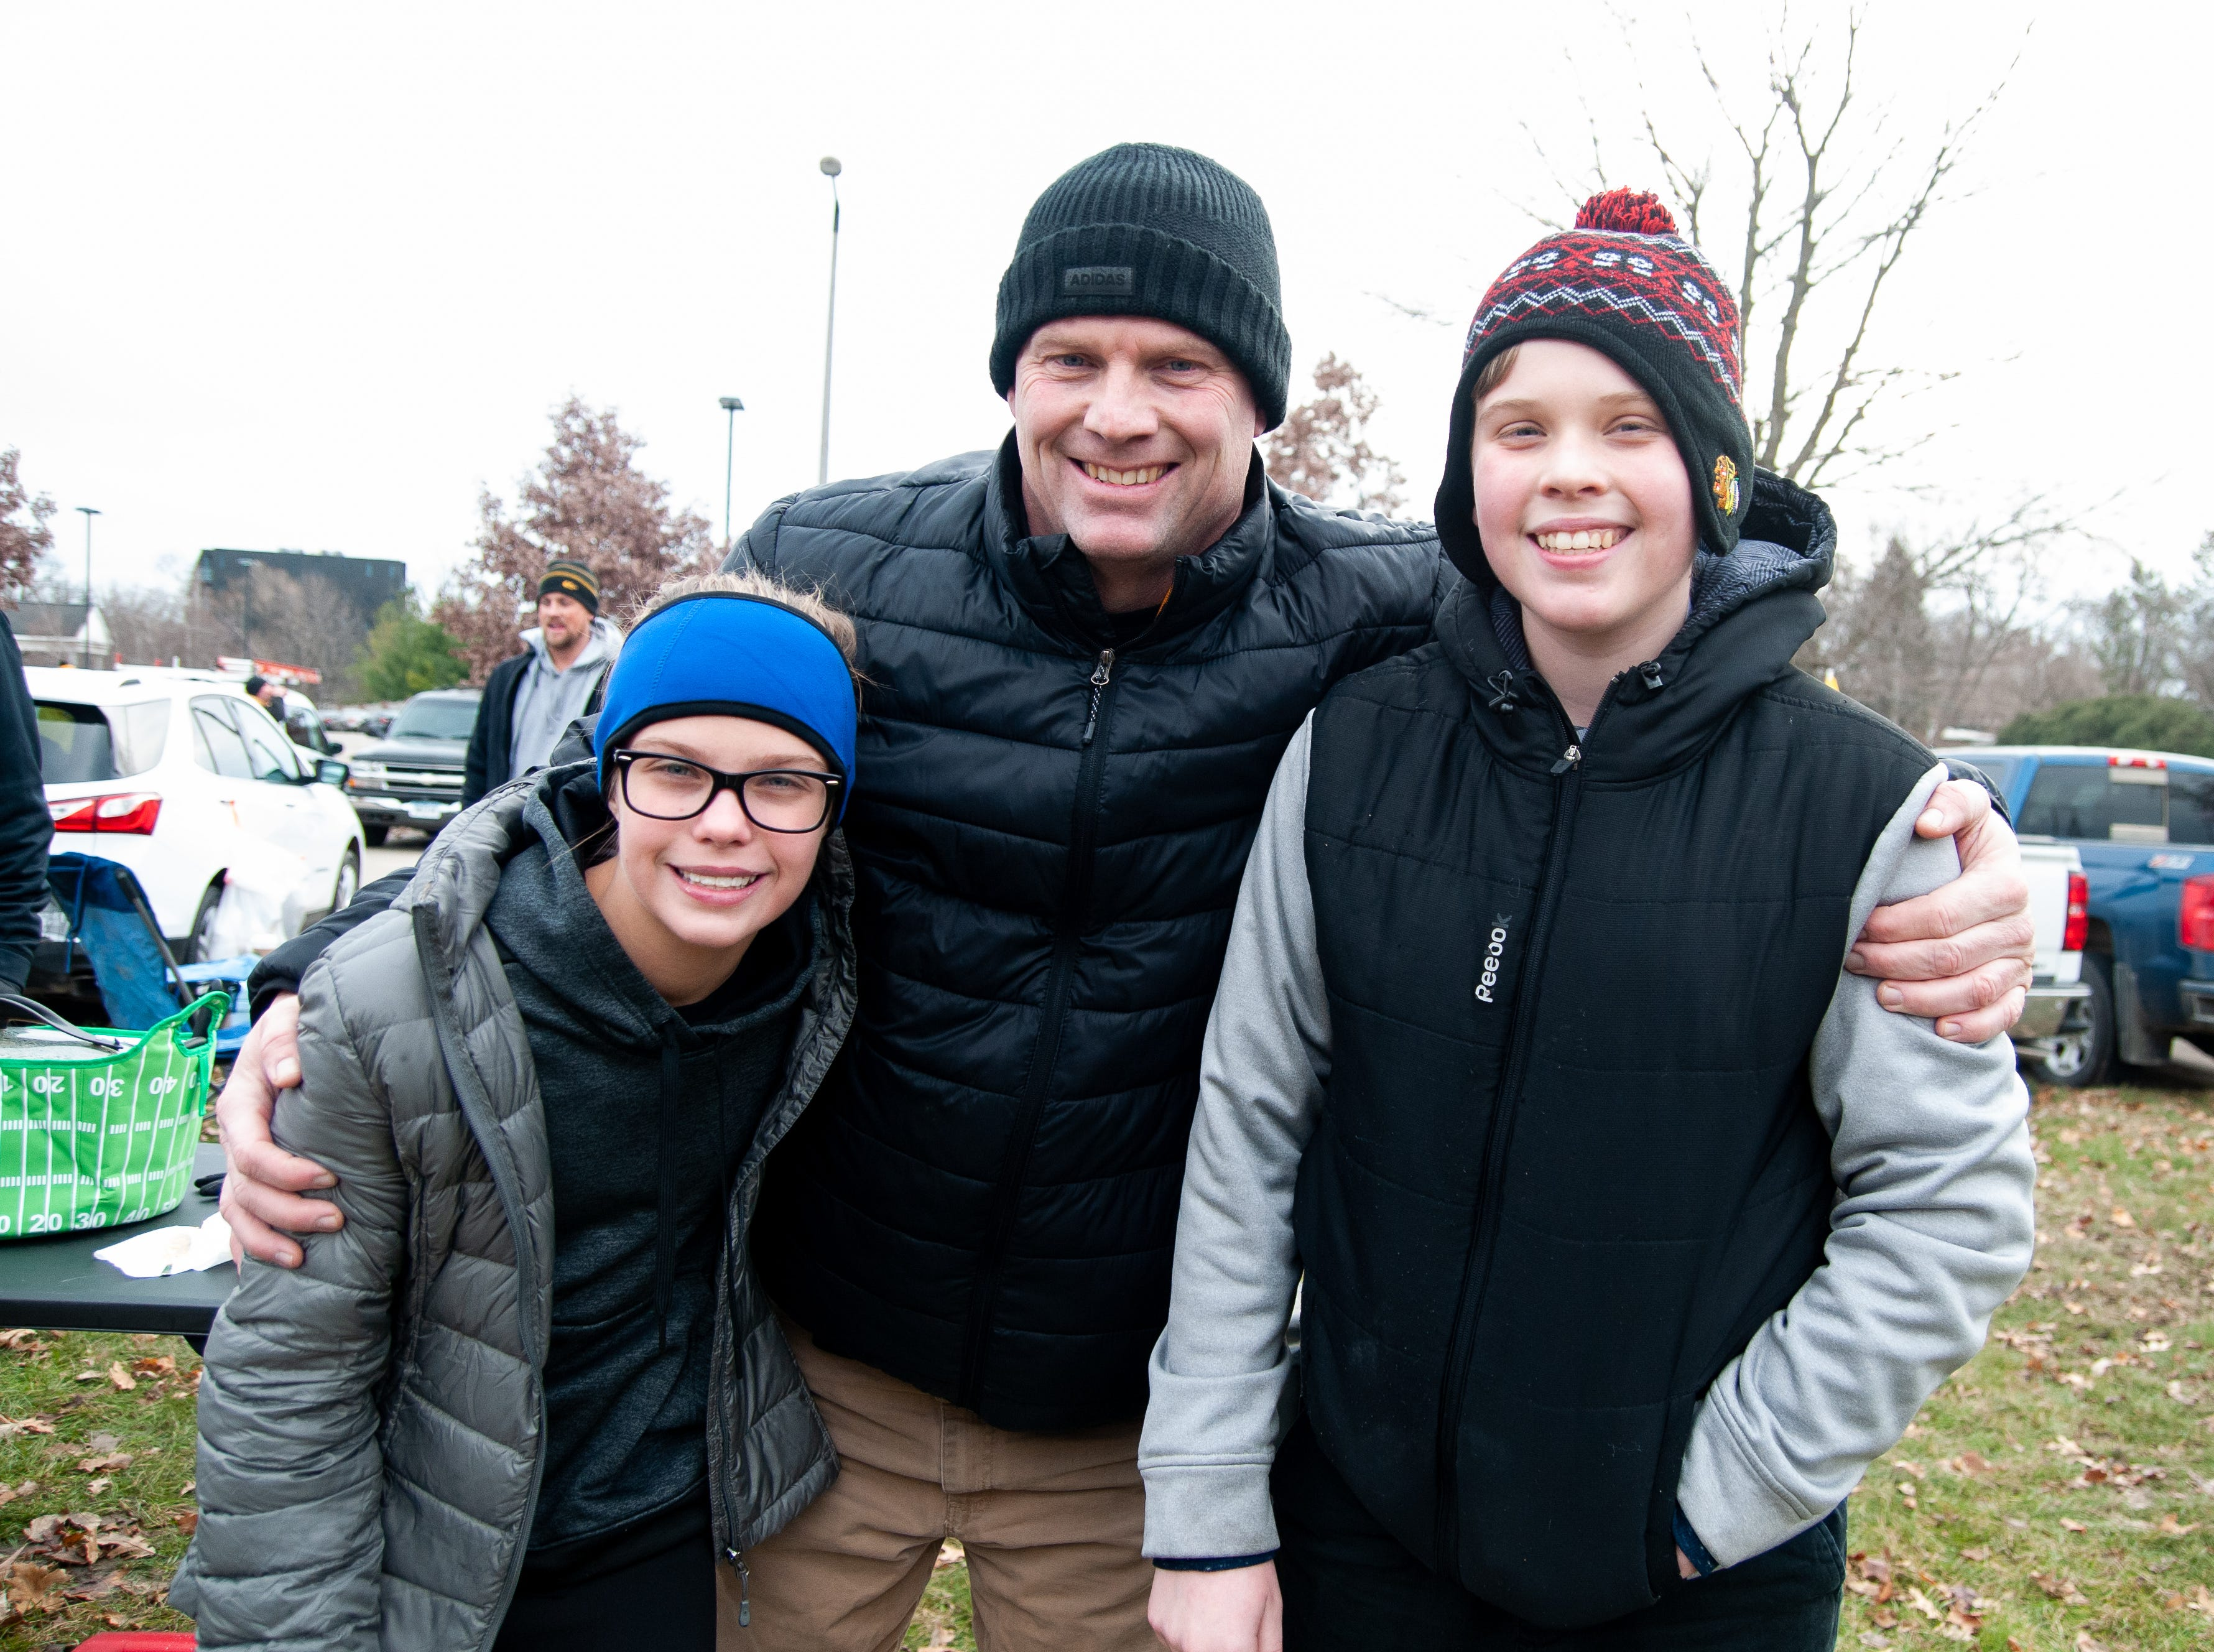 Lydia, left, Tom and Dylan Bisenius, of Chicago, Friday, Nov. 23, 2018, while tailgating before the Iowa game against Nebraska in Iowa City.